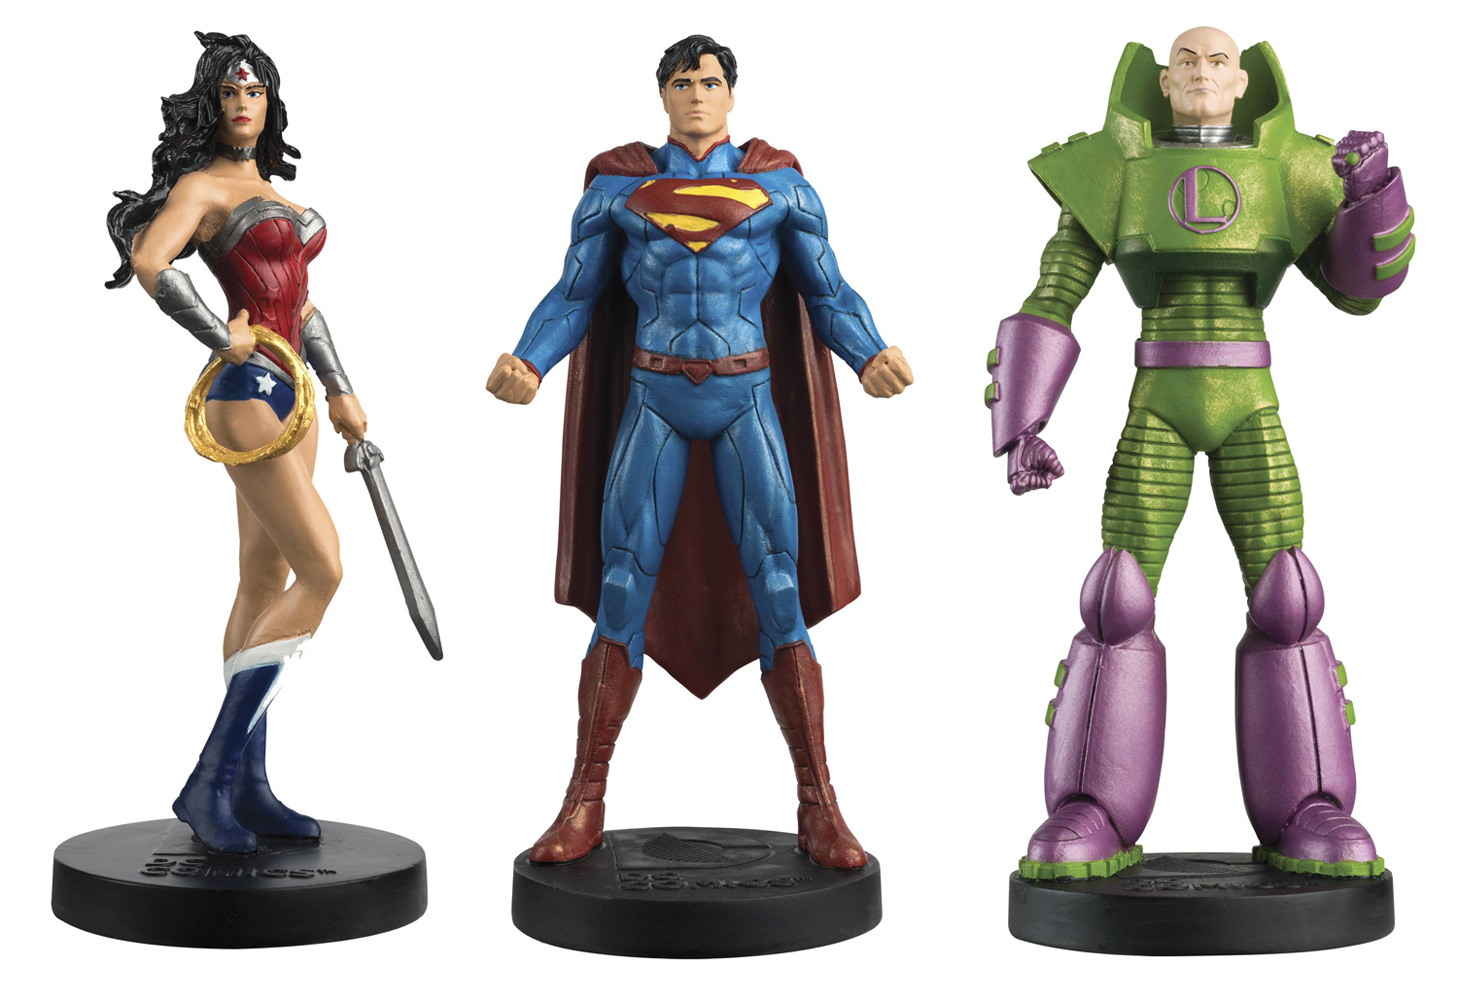 DC Comics Eaglemoss Masterpiece Collection: Justice League - Superman, Wonder Woman & Lex Luthor #3 - Eaglemoss Publications Ltd